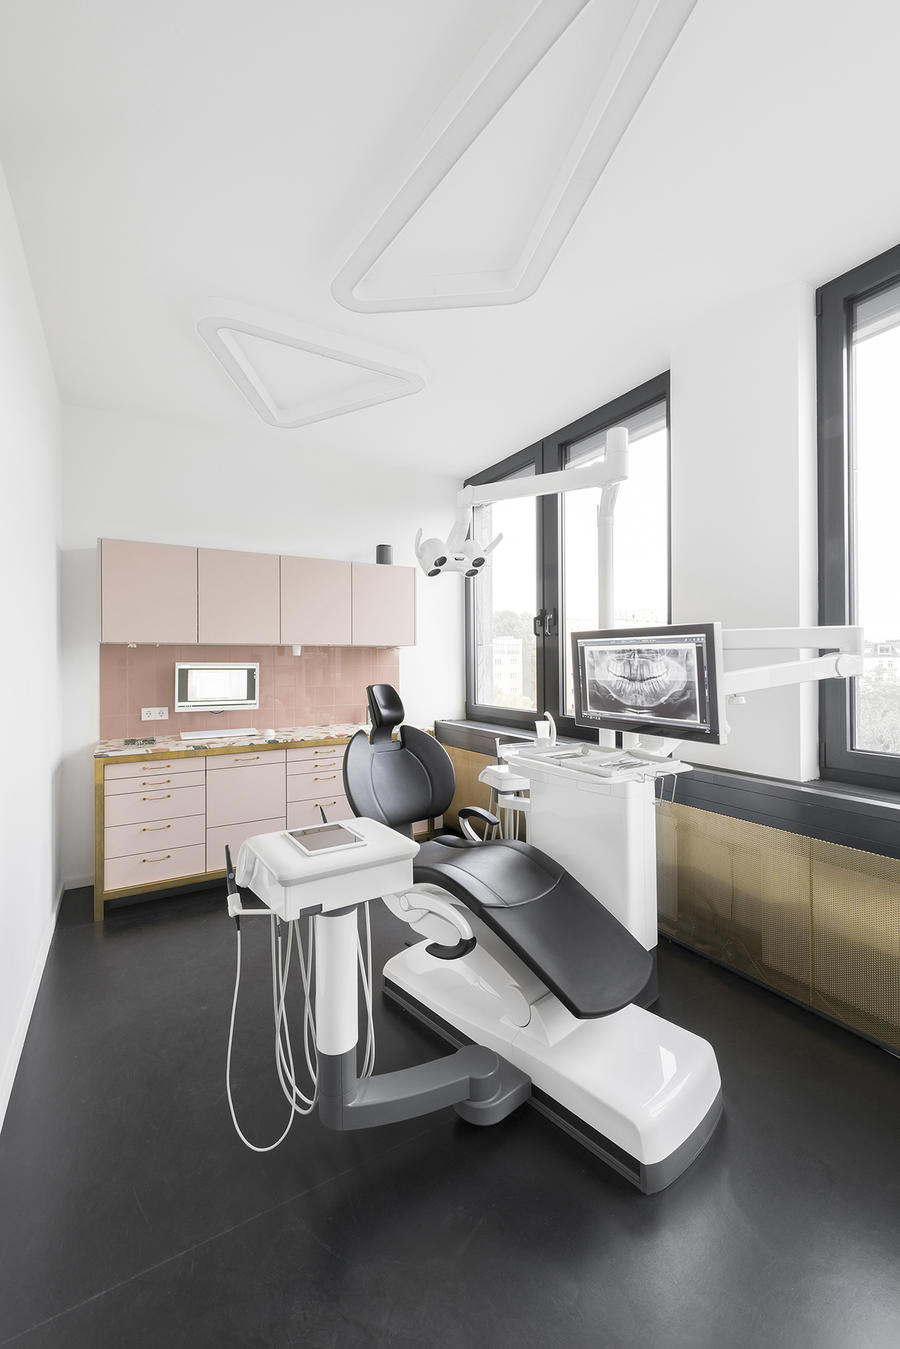 On the mend: How cutting-edge design plays a role in patient wellness